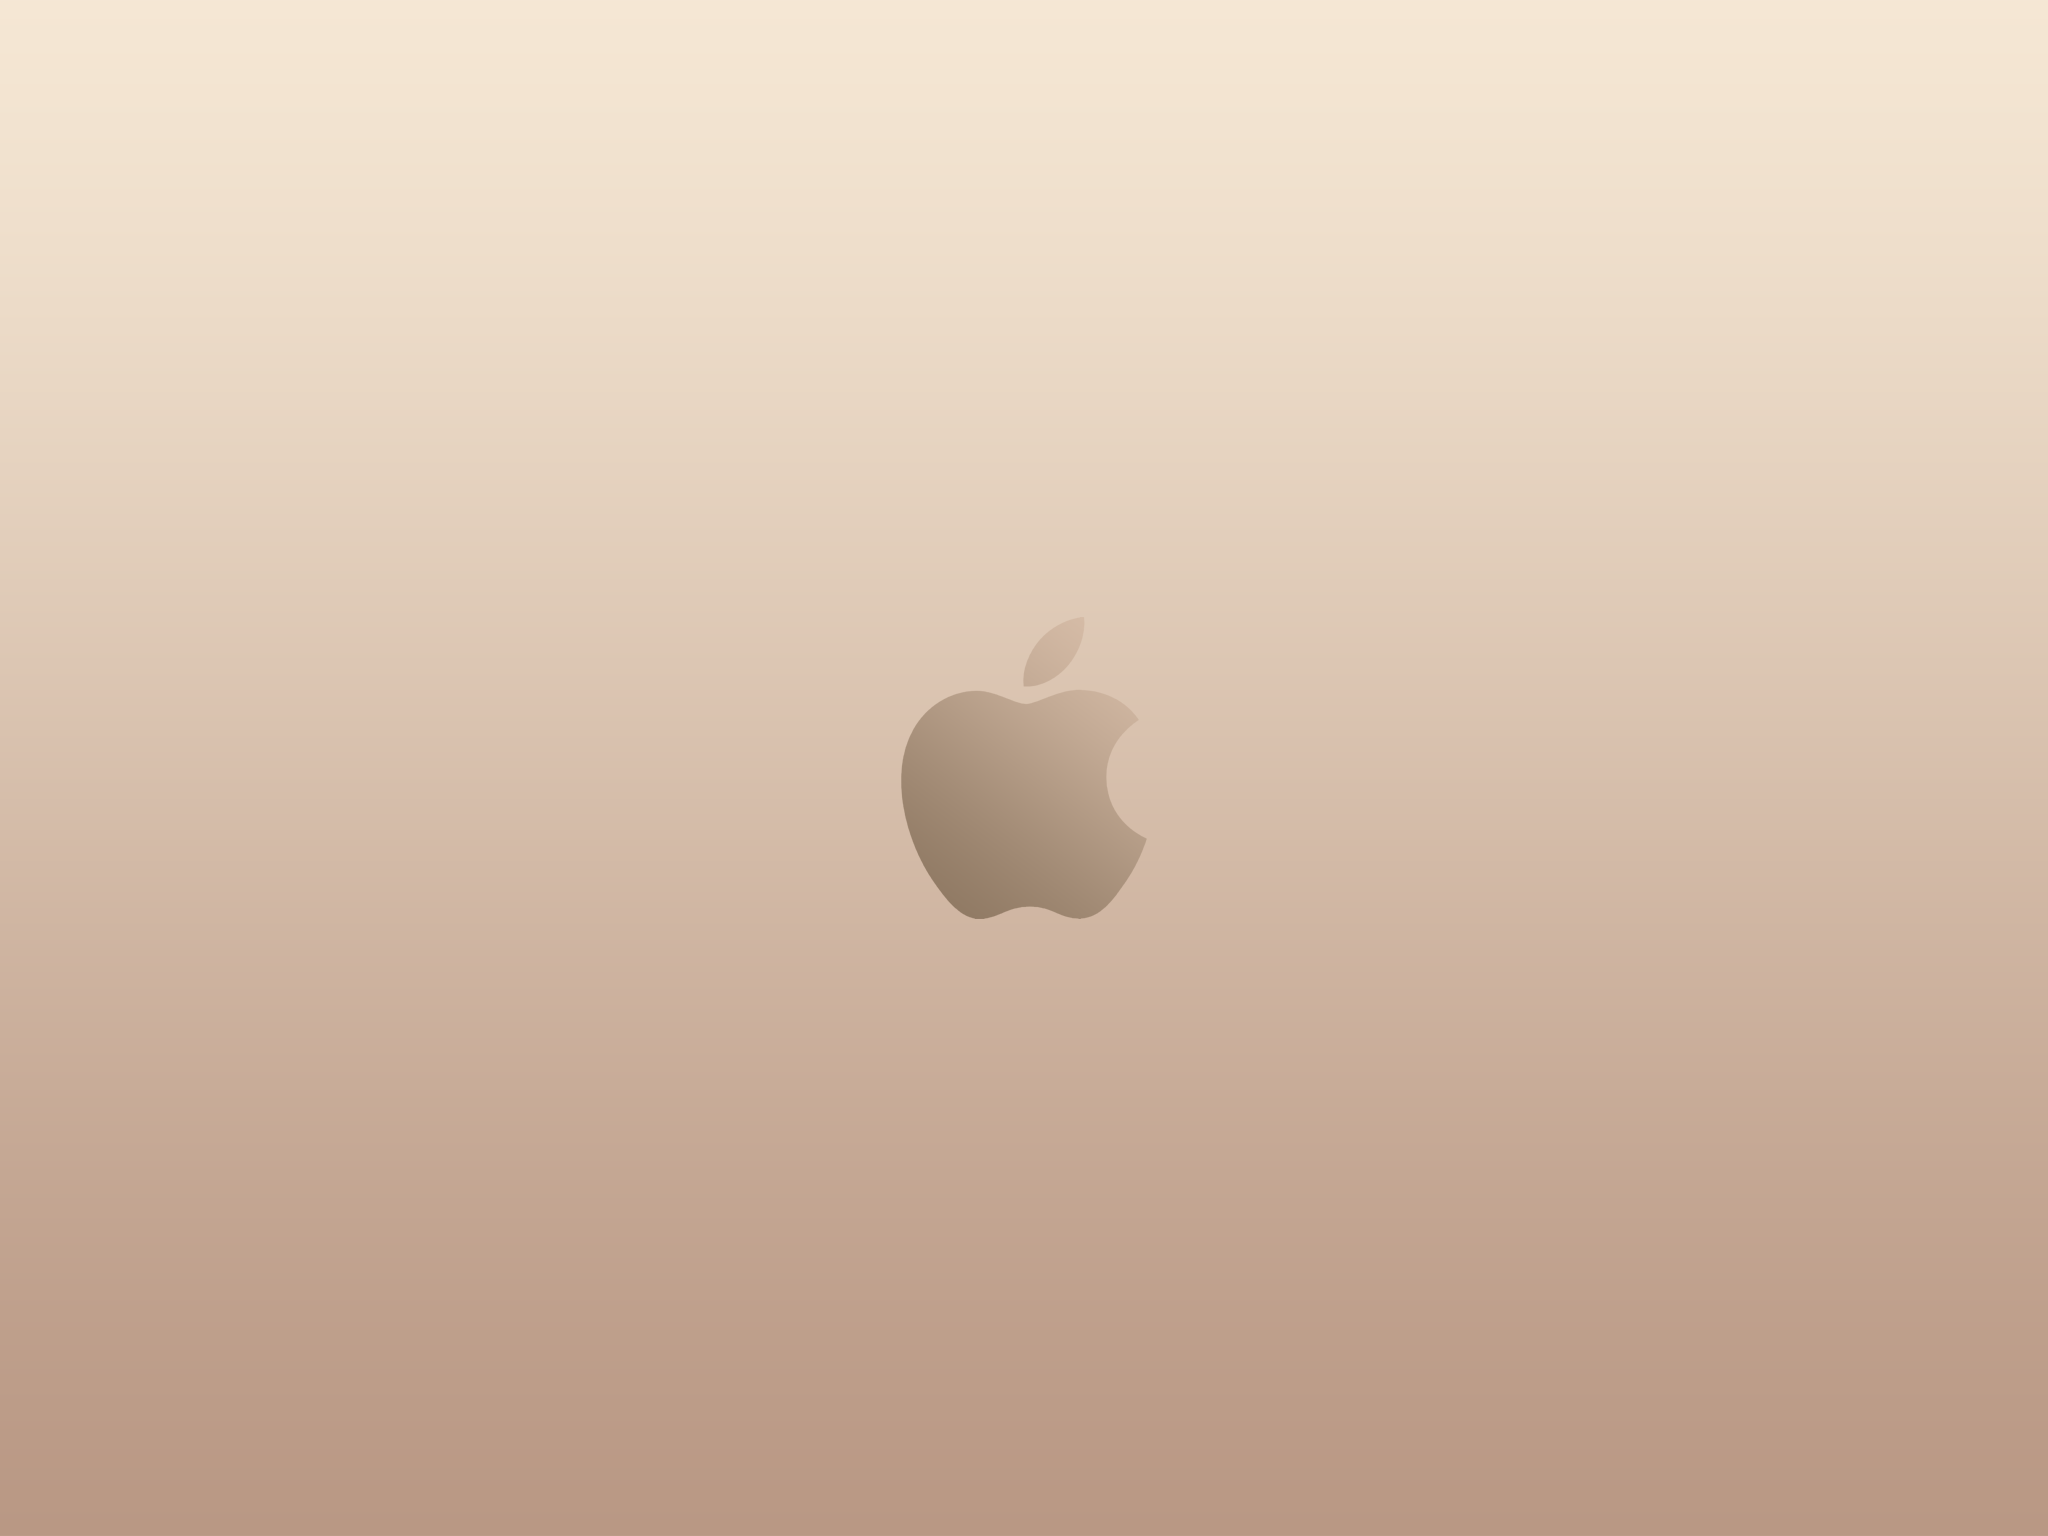 apple logo gold wallpapersuperquanganh on deviantart